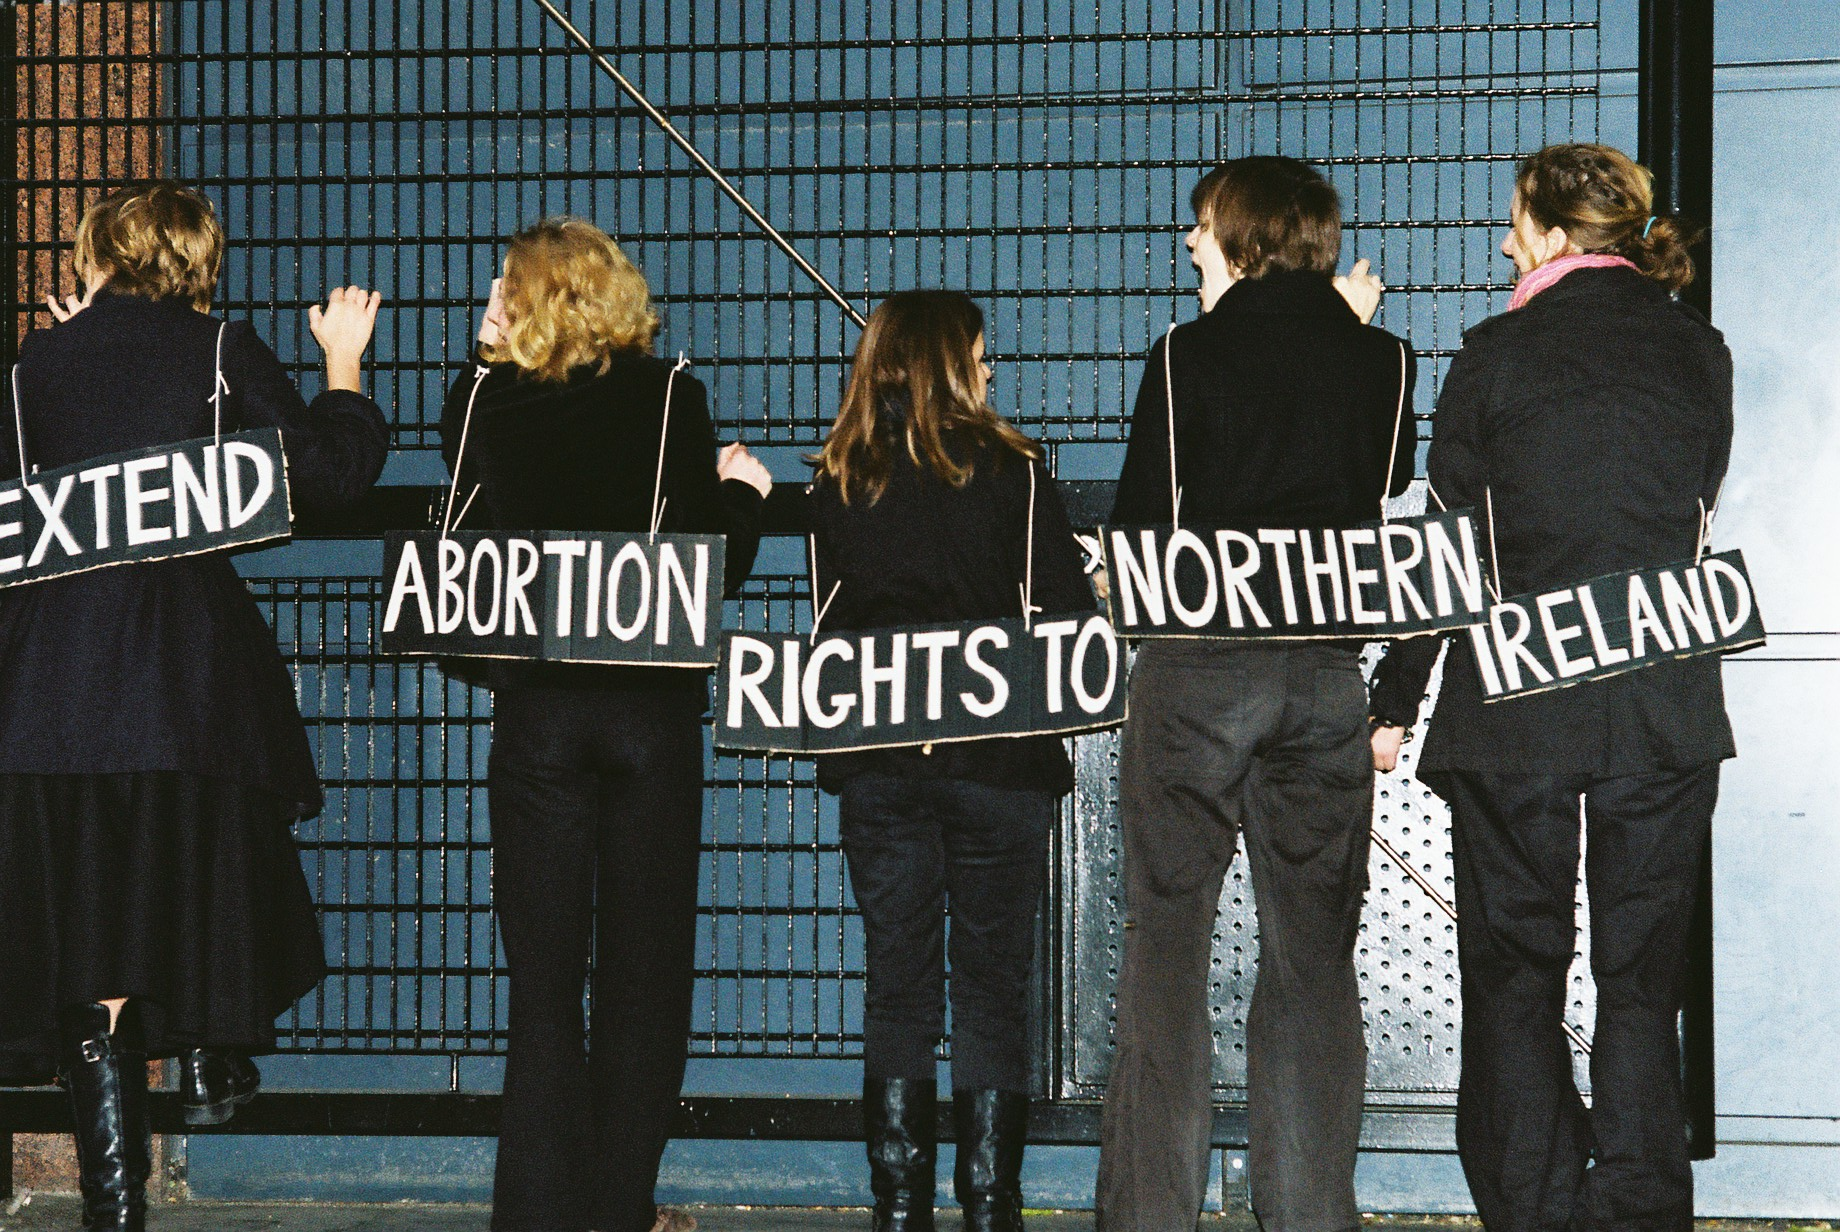 'Northern Ireland's abortion laws would make most bible-belted states green with envy'